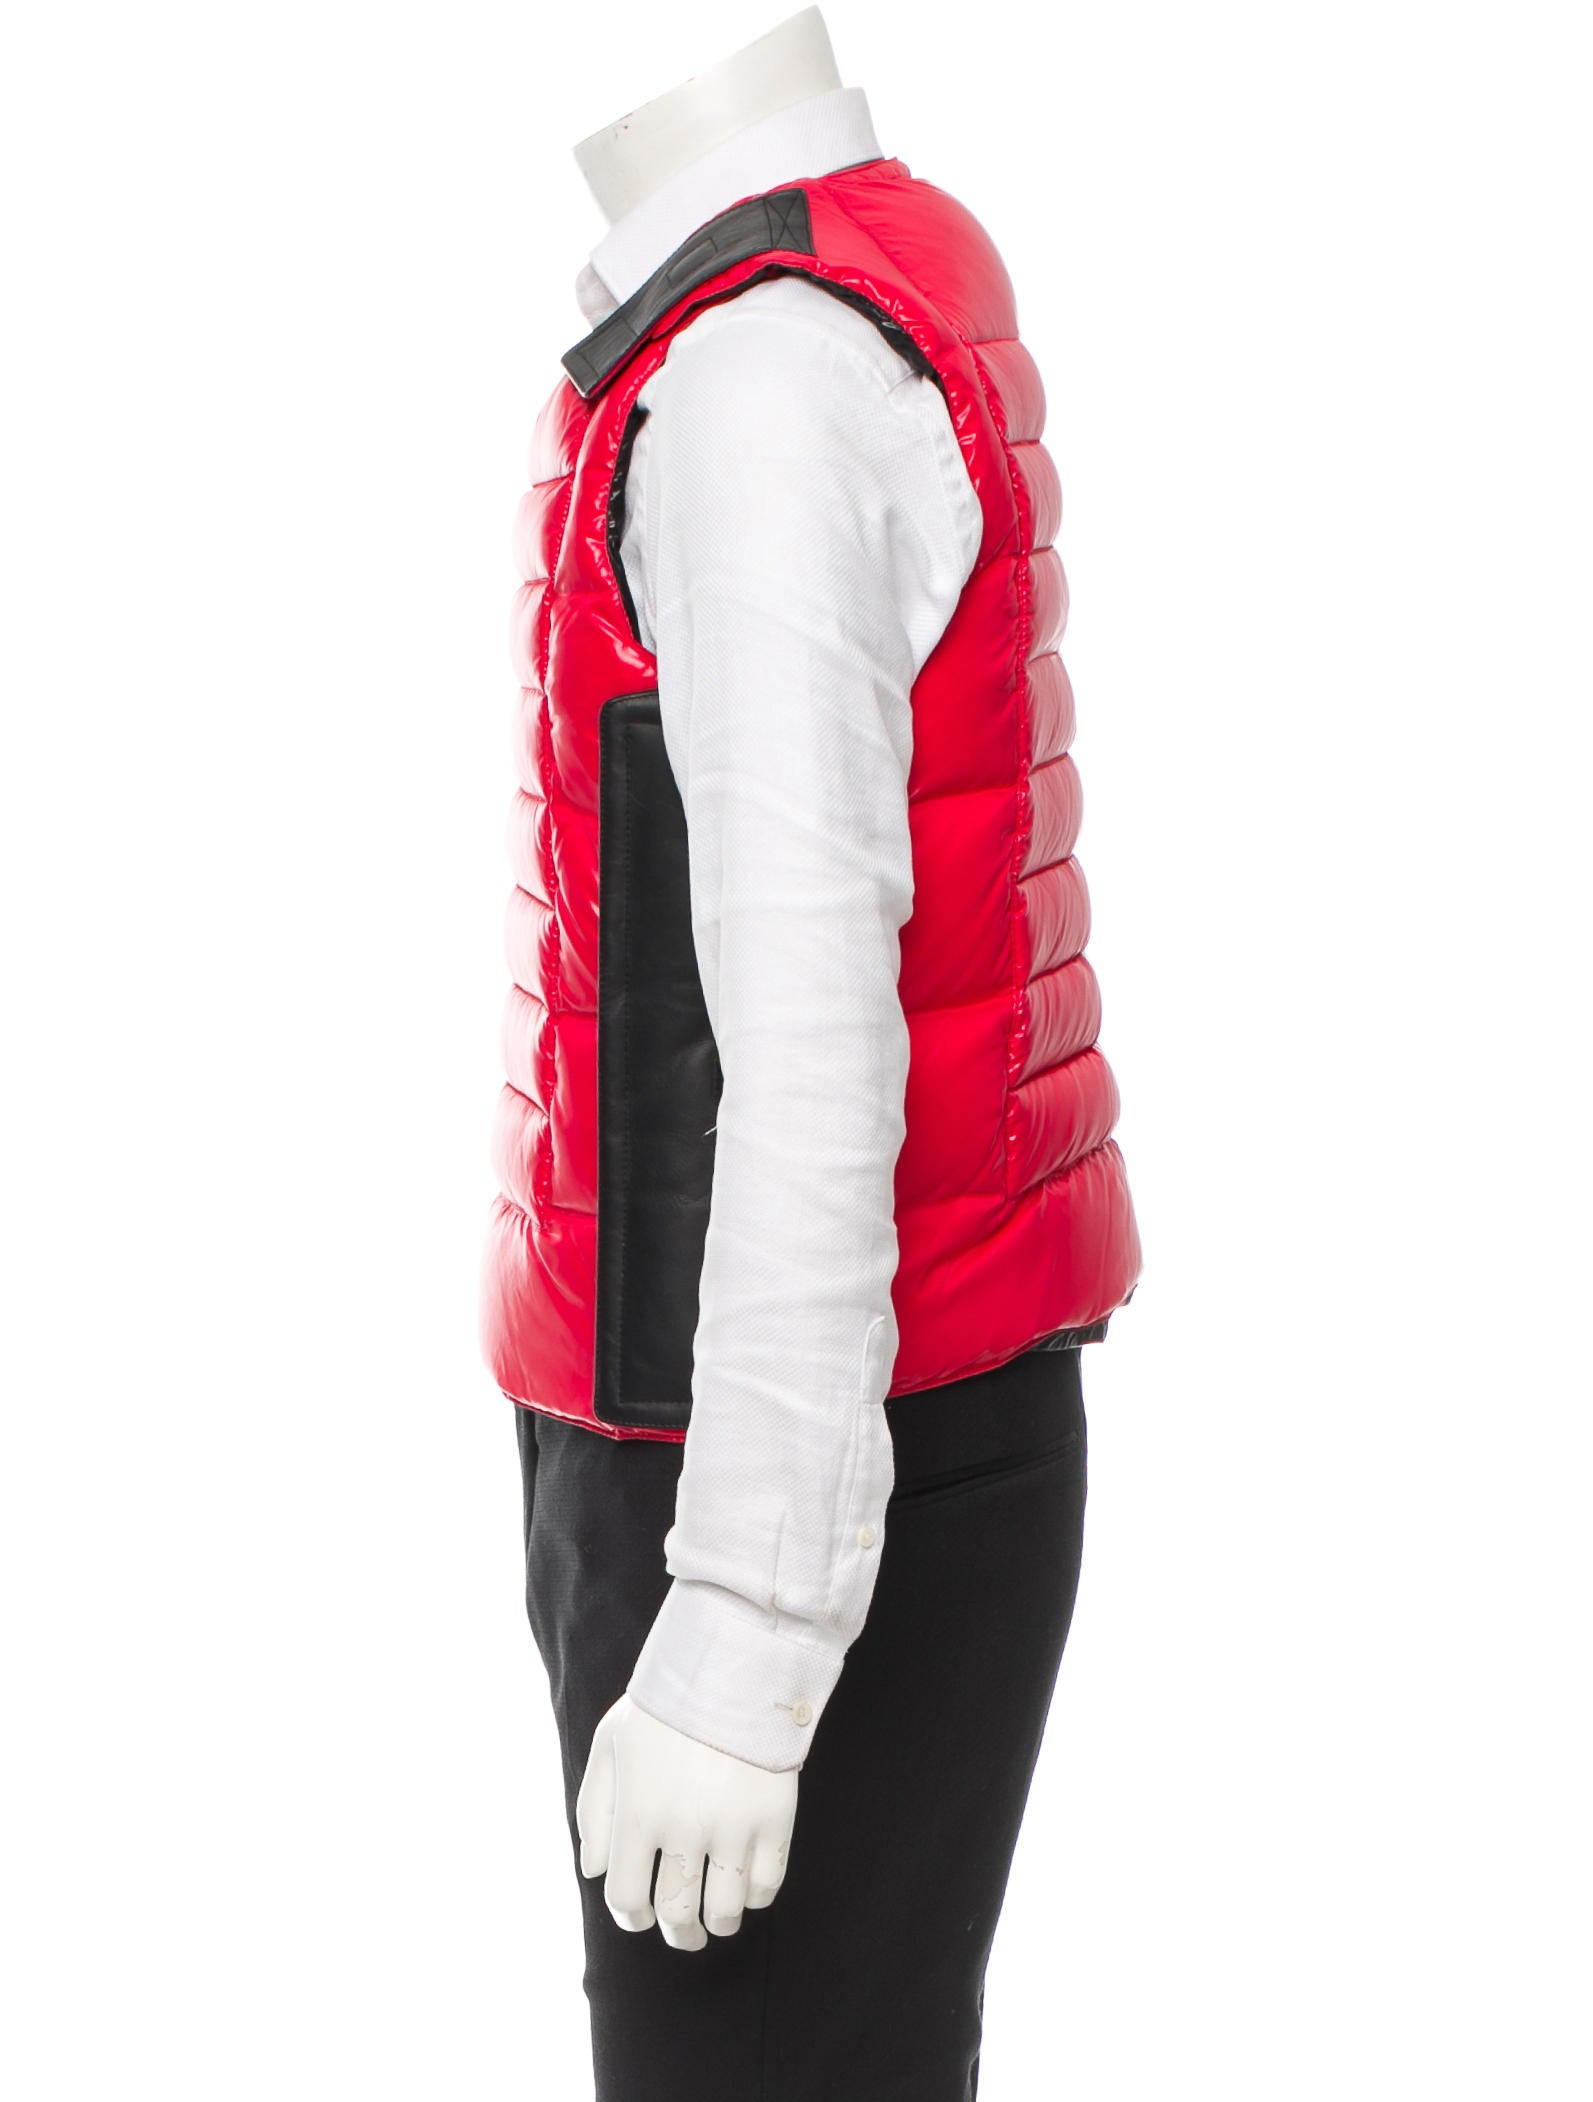 moncler bullet proof vest yellow